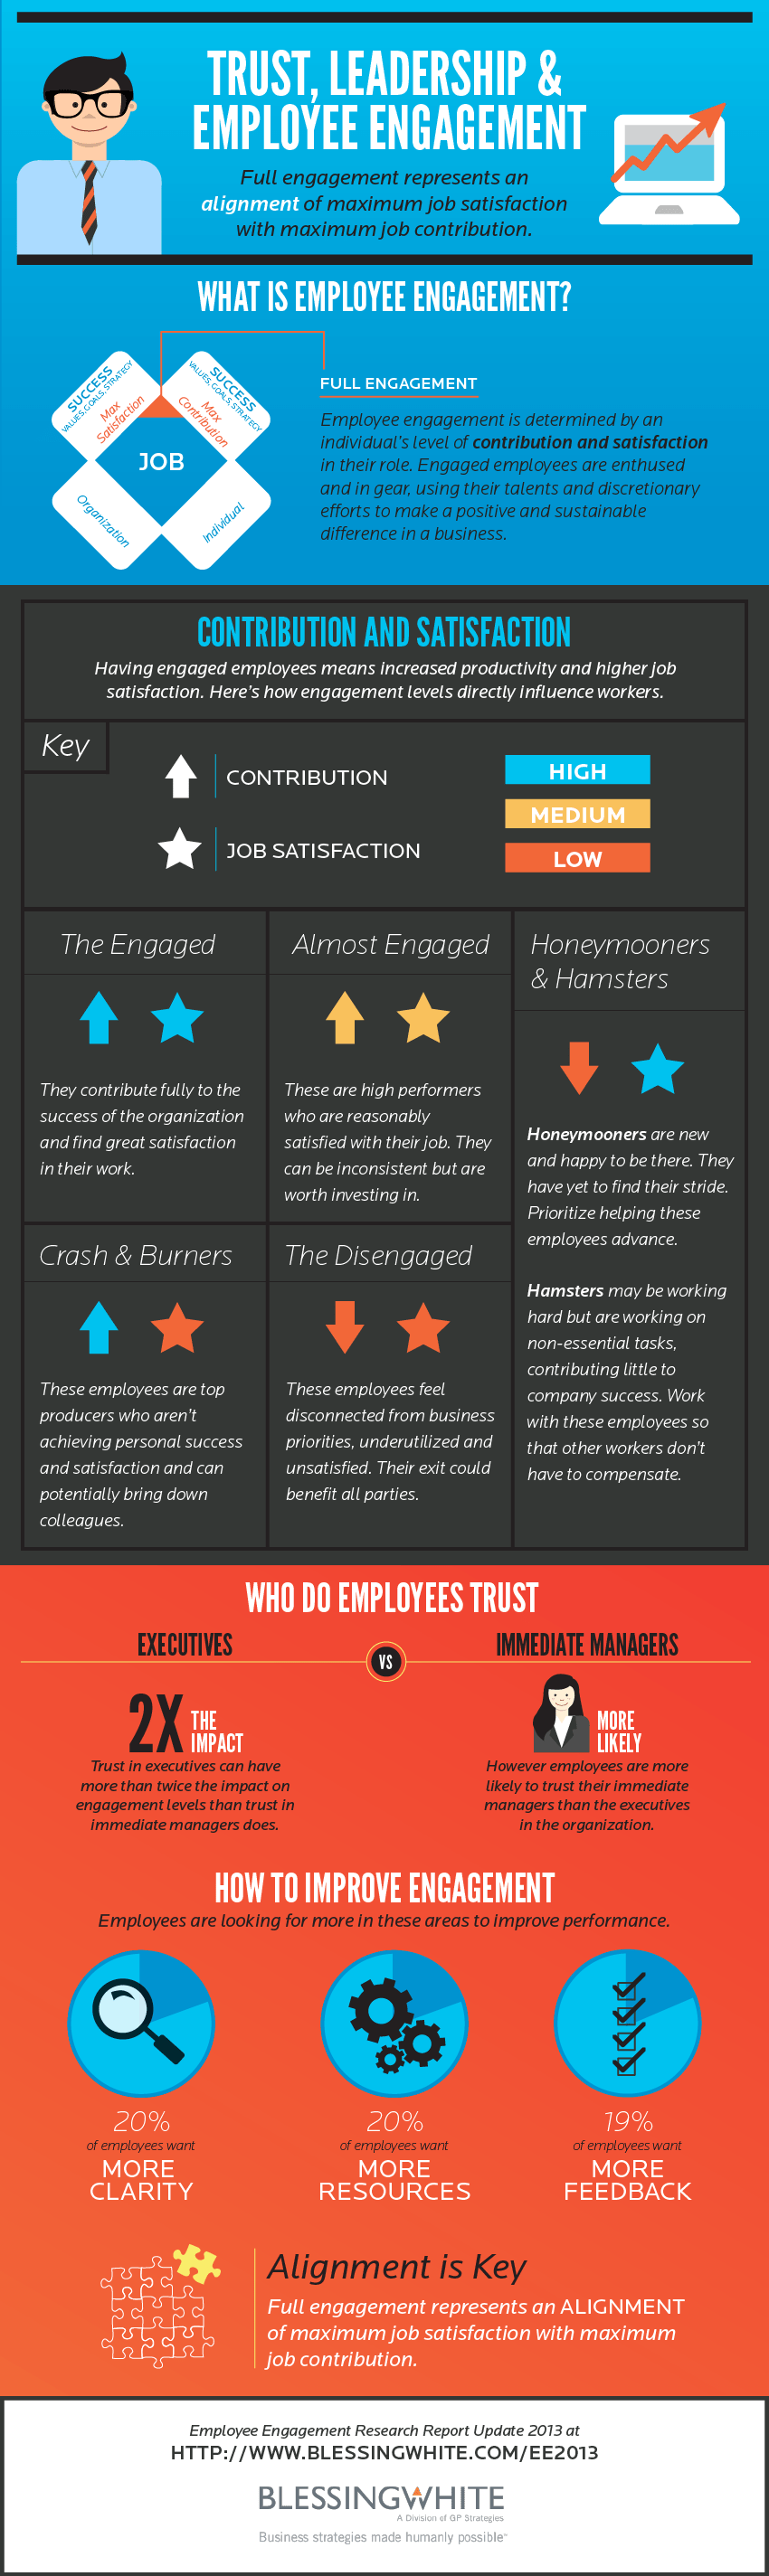 trust-leadership--employee-engagement_5183b4534d819